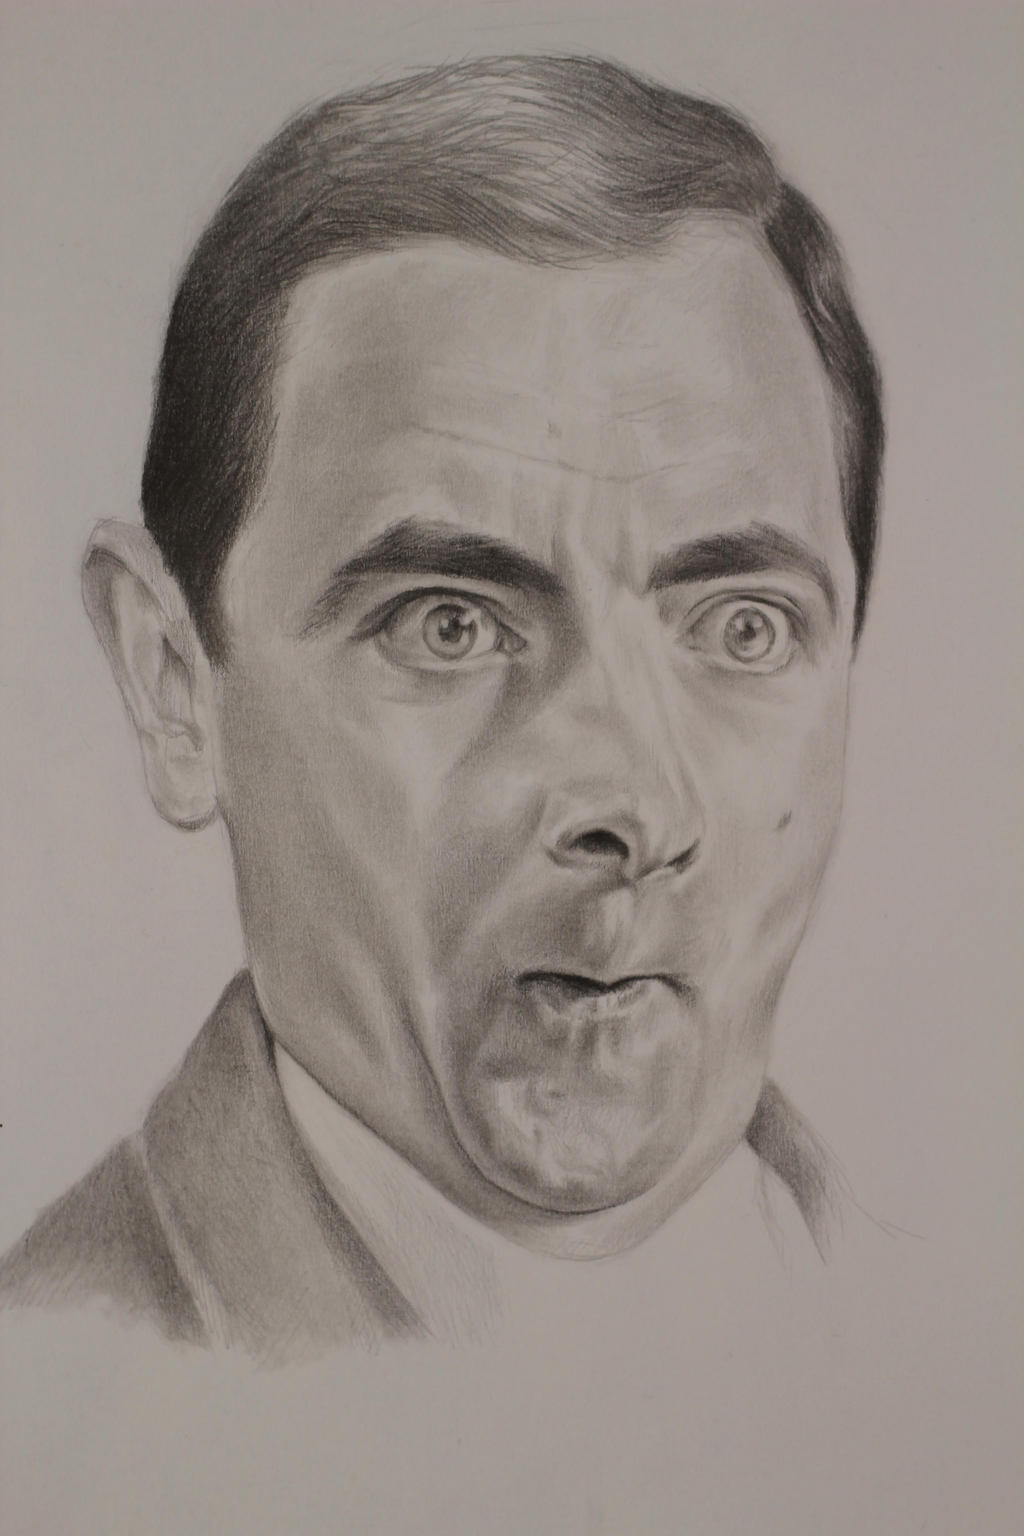 Mr. Bean (Work in Progress) by Mimitchki